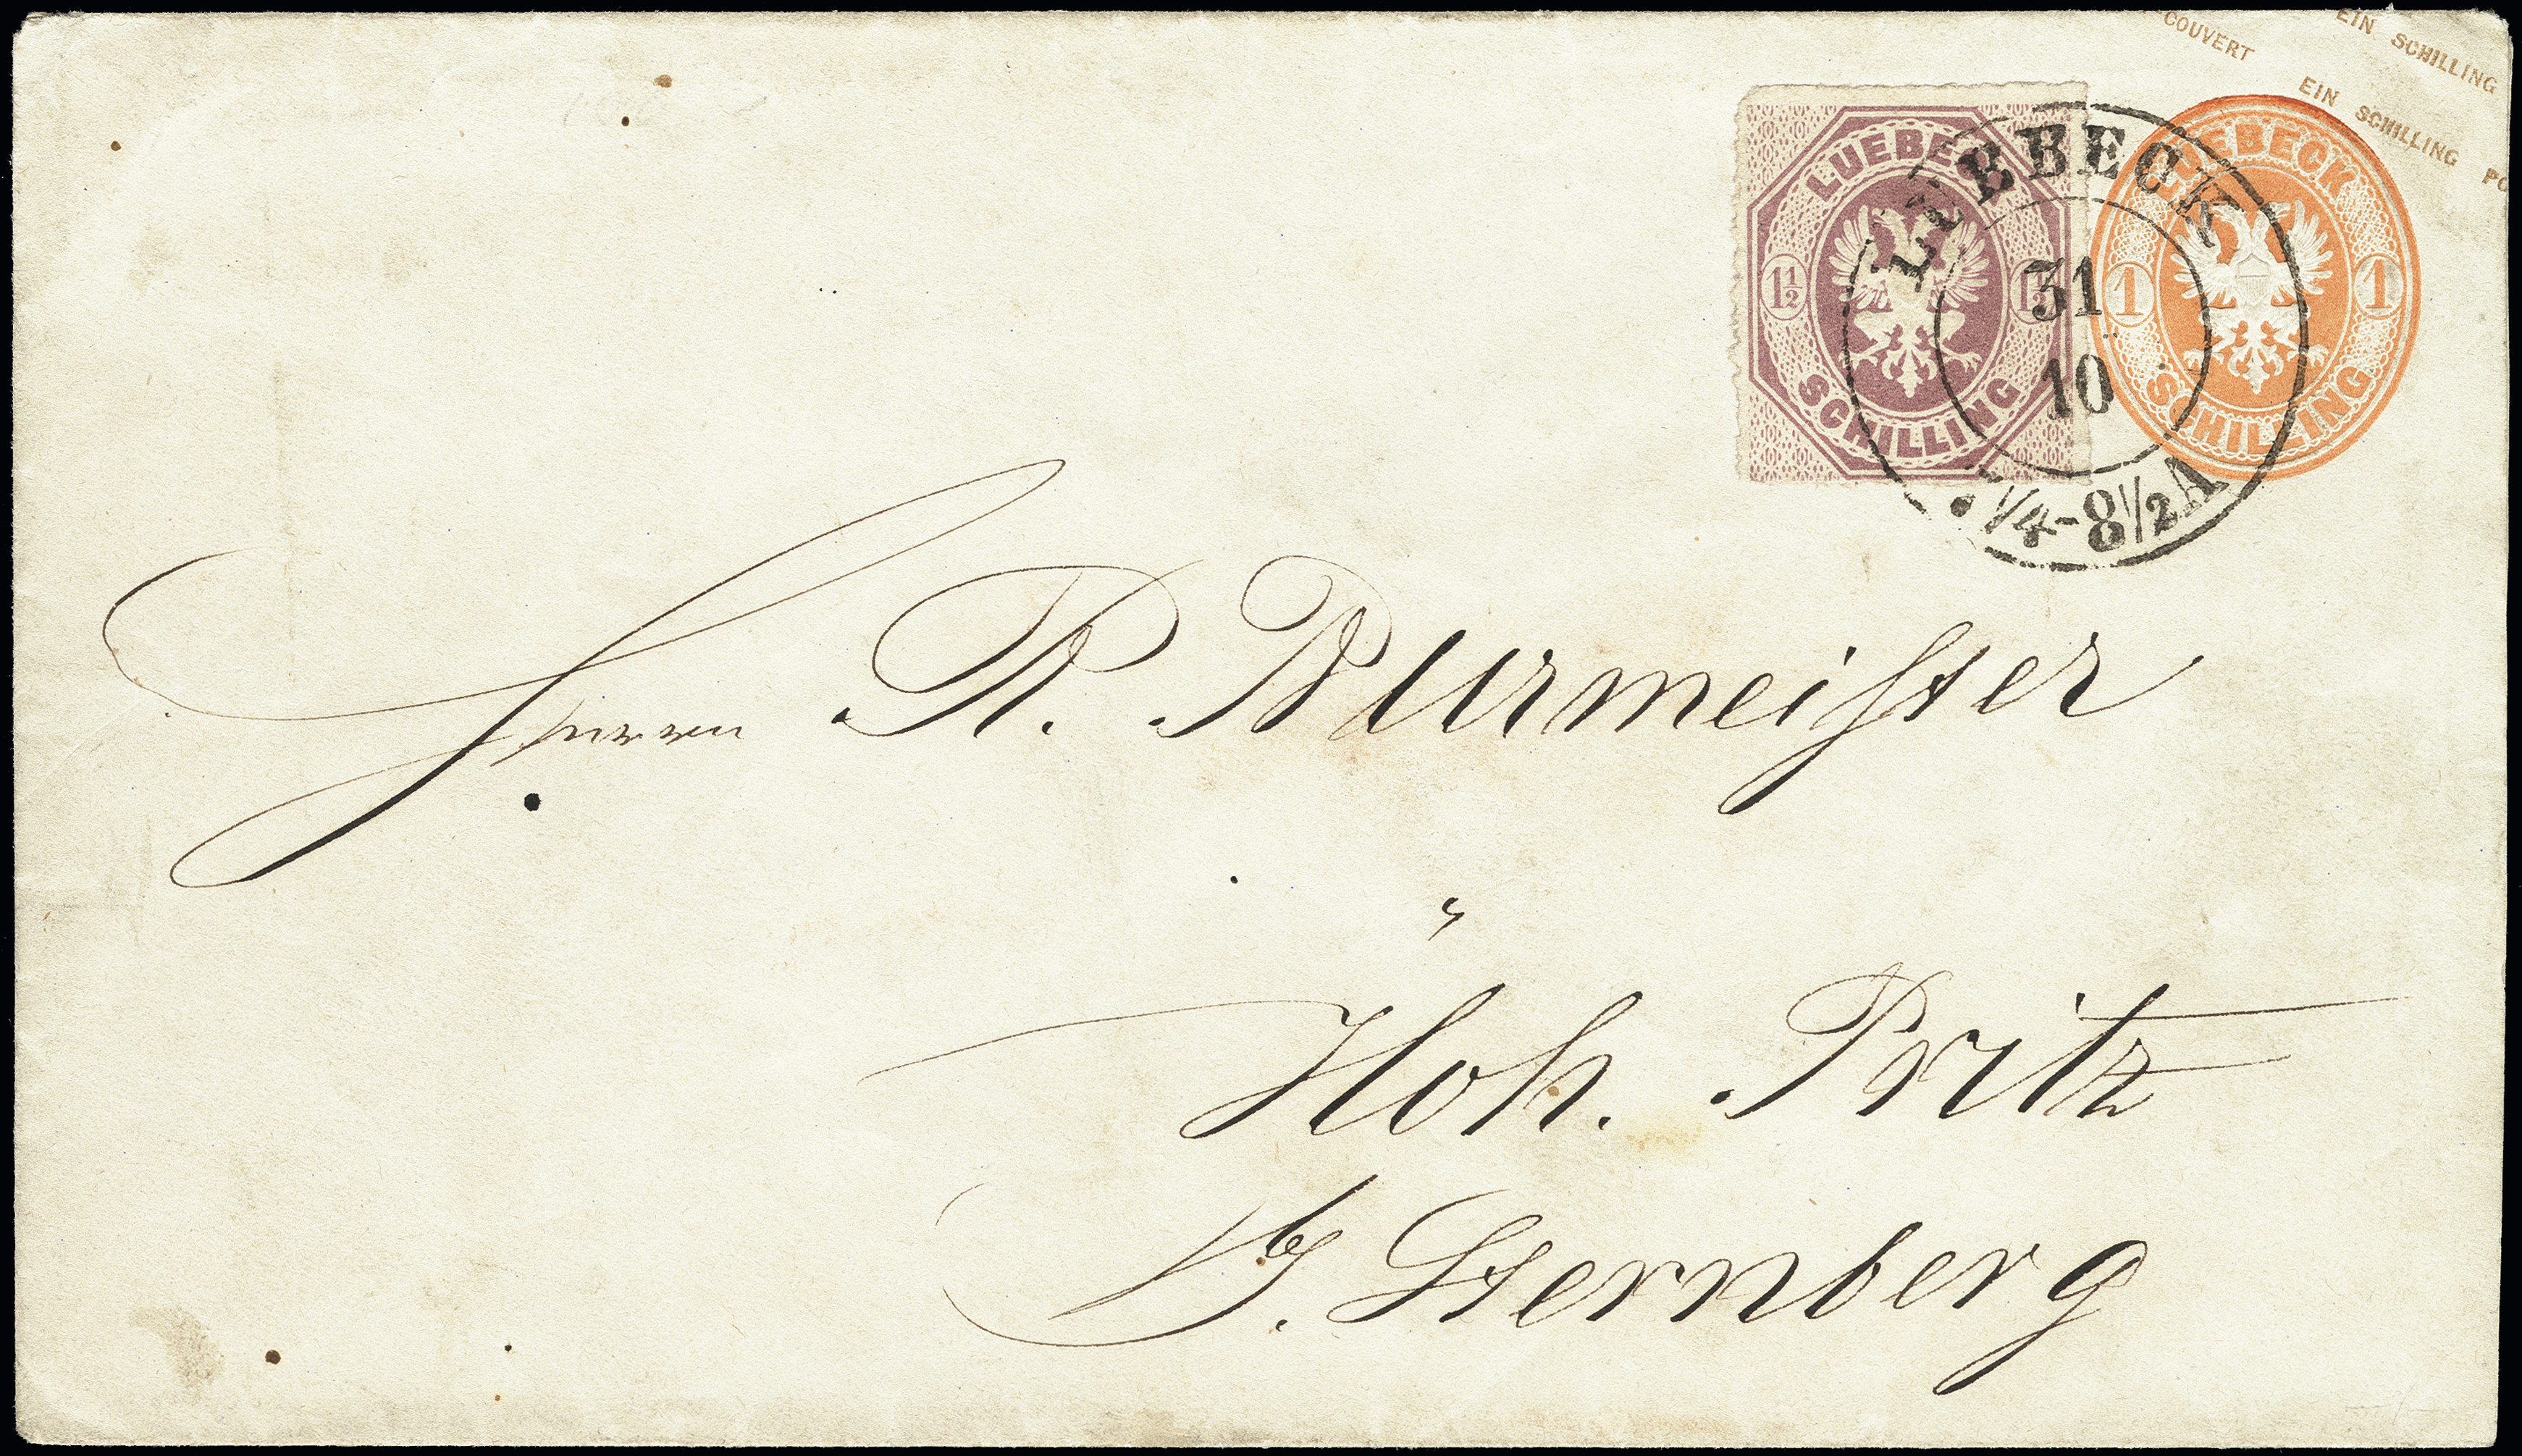 Lot 3419 - german states lübeck -  Heinrich Koehler Auktionen Heinrich Köhler Auction 376 - Day 5